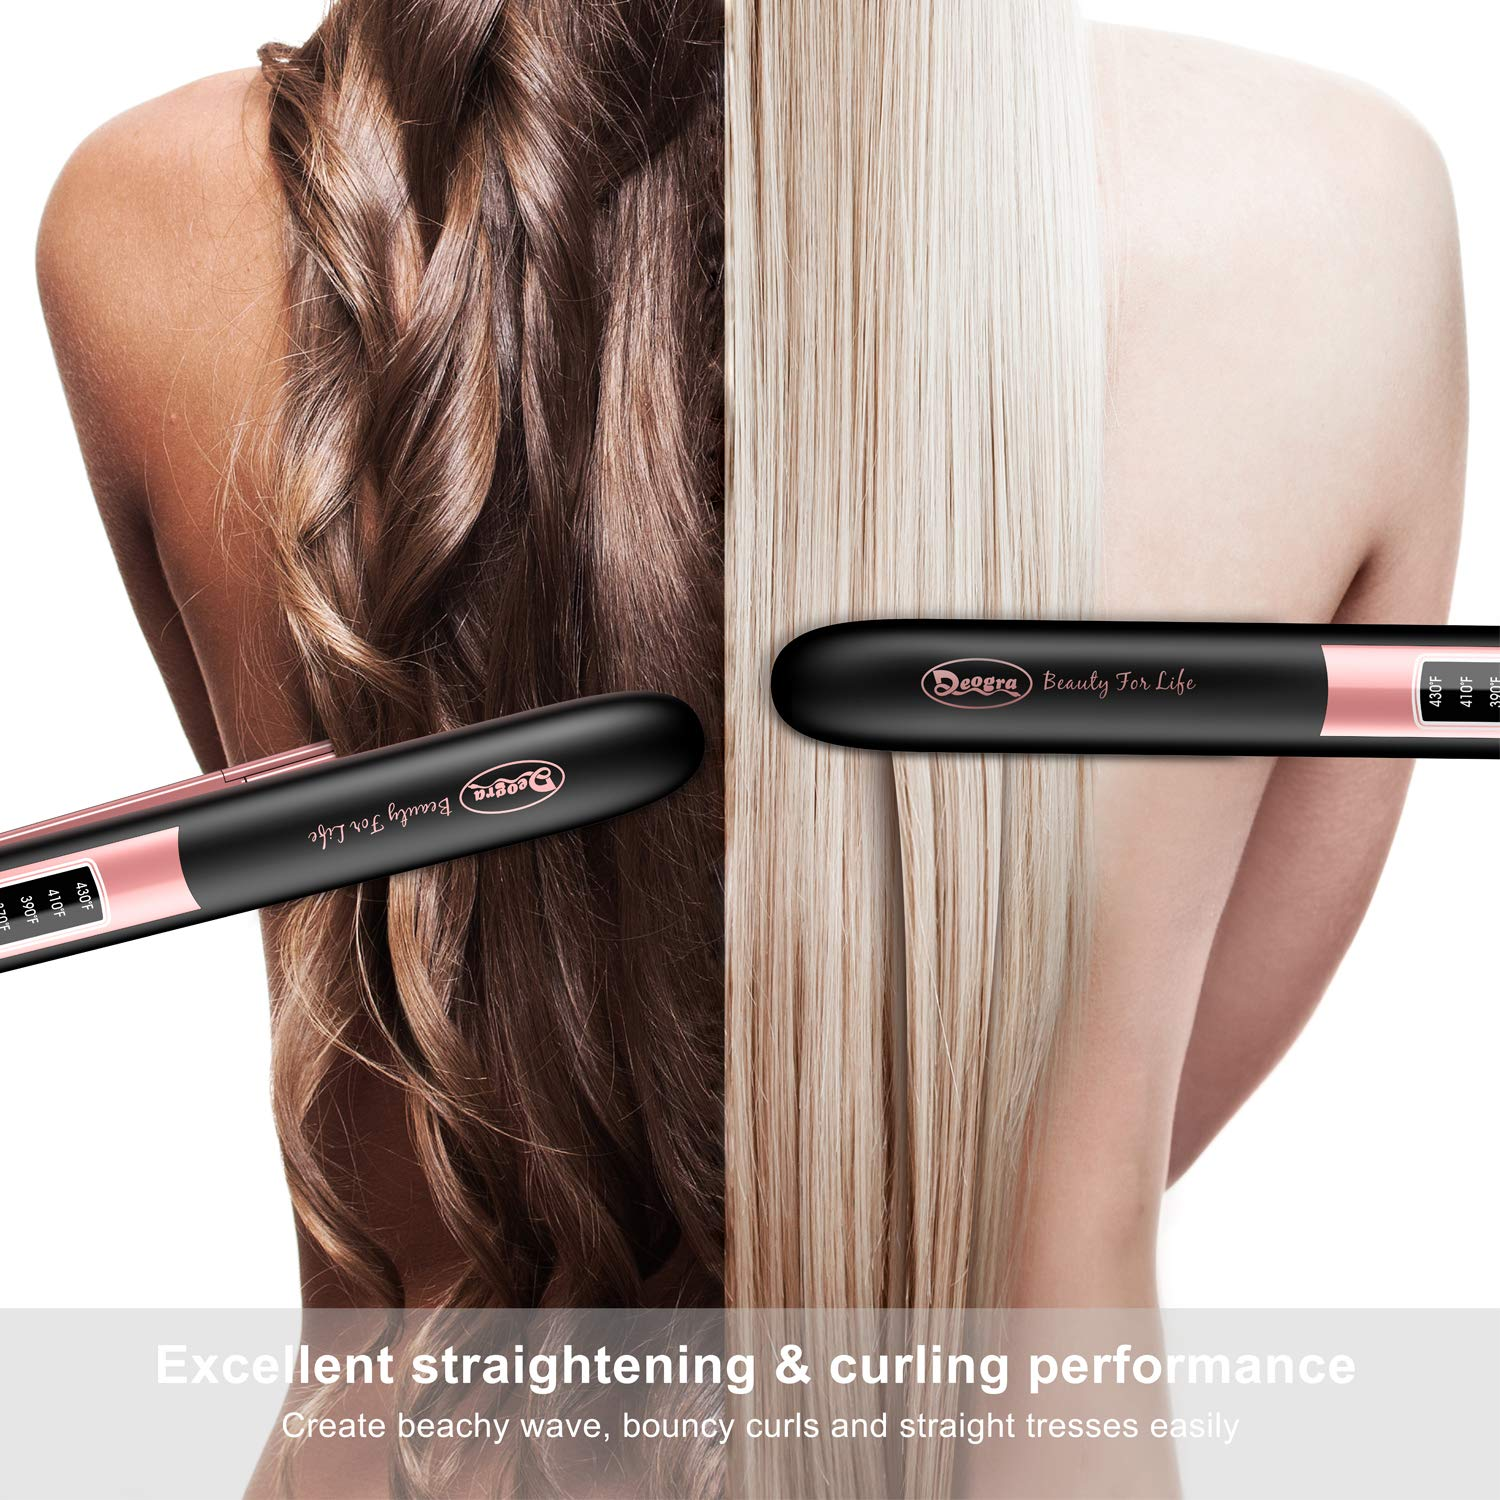 1 Inch Ionic Flat Iron - Ceramic Hair Straightener with Keratin & Argan Oil